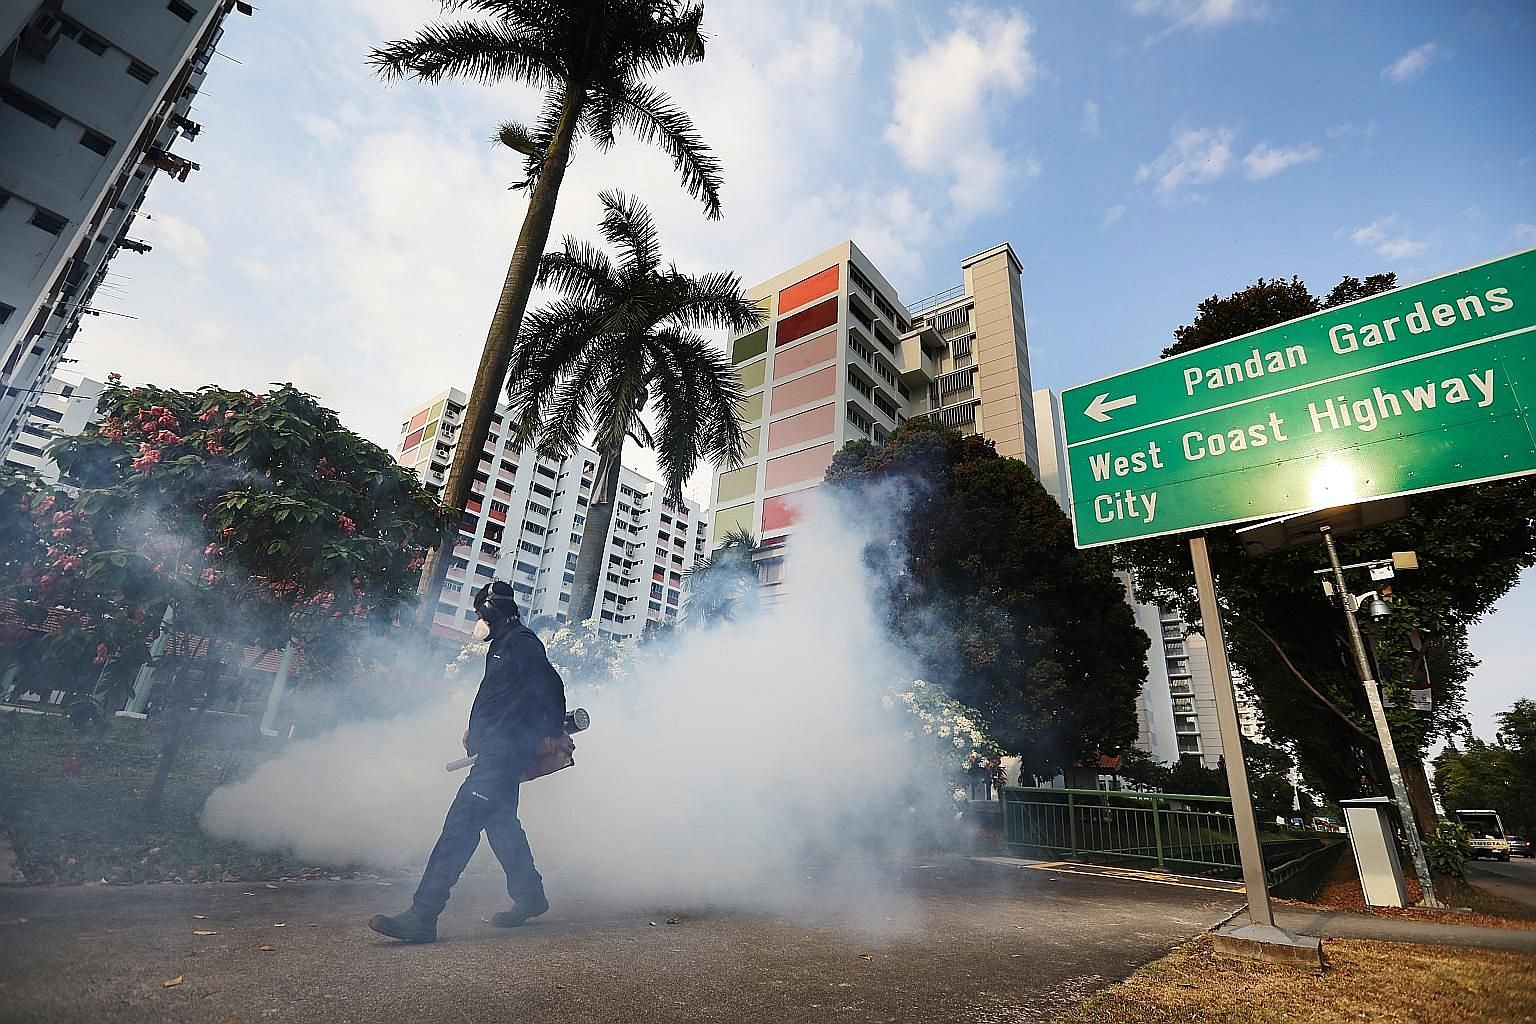 A PUB contractor carrying out fogging at Housing Board blocks near Pandan Reservoir earlier this month.